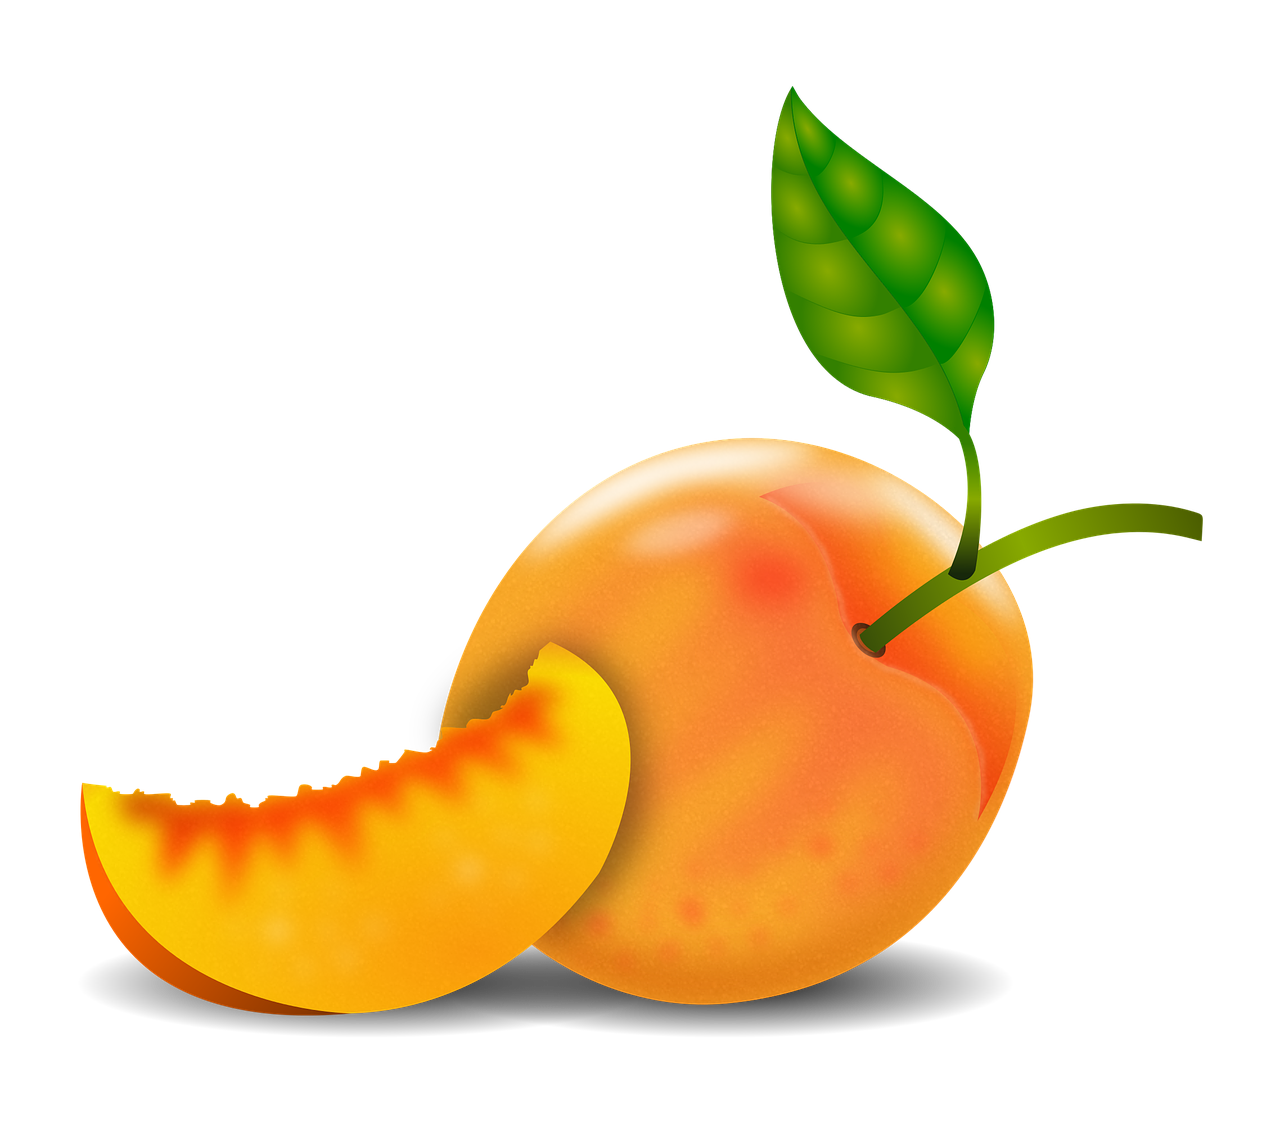 peach_transparent_bg